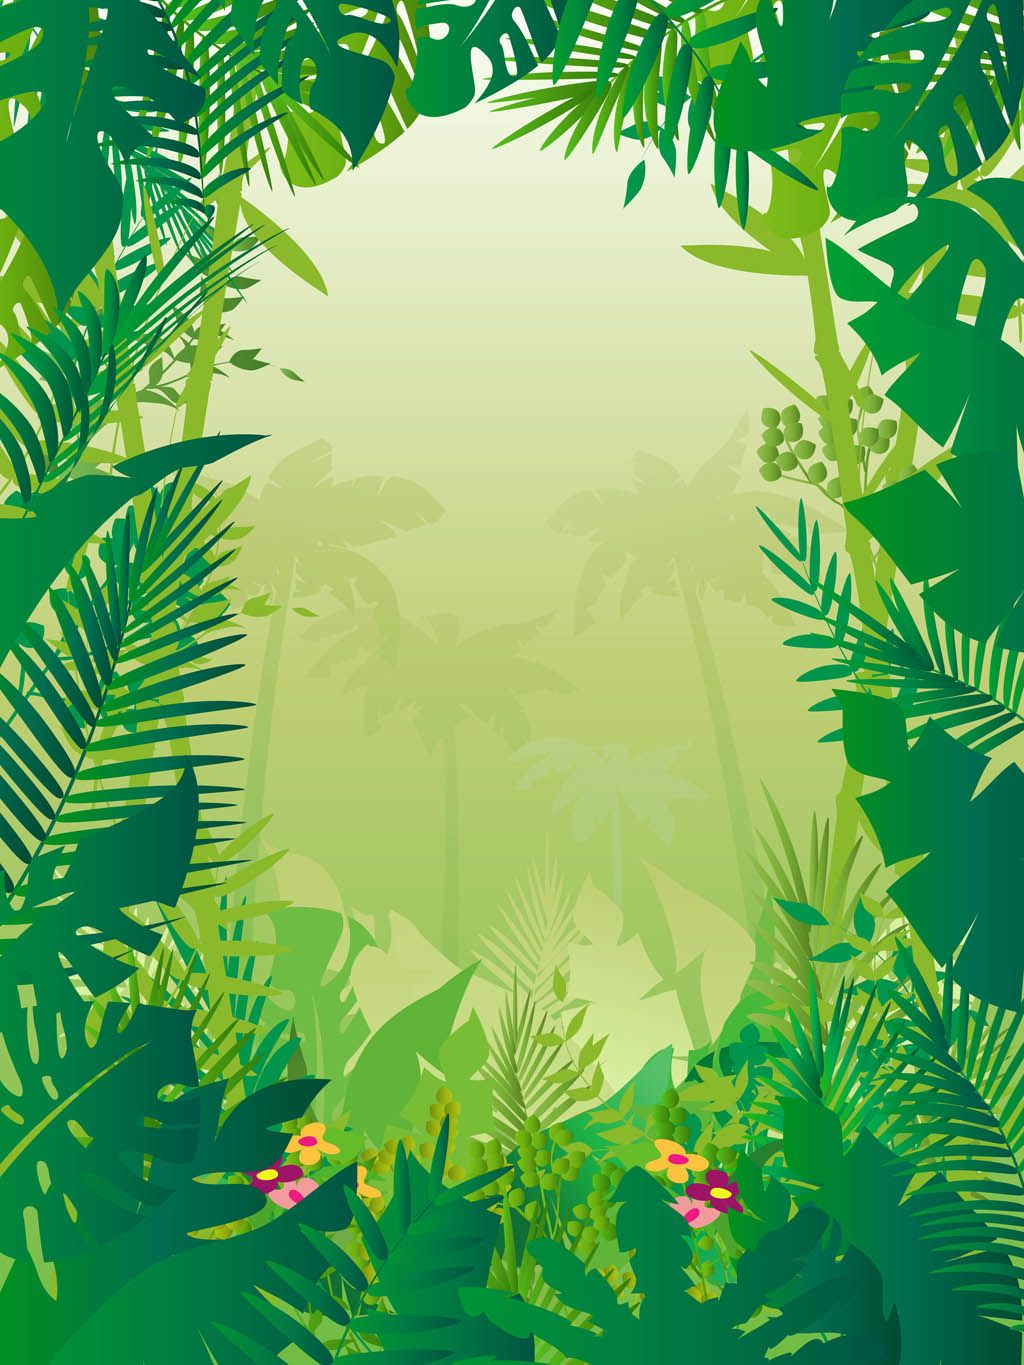 Nature and exotic places vector graphics of a jungle plant leaves nature and exotic places vector graphics of a jungle plant leaves and different flowers creating stopboris Choice Image